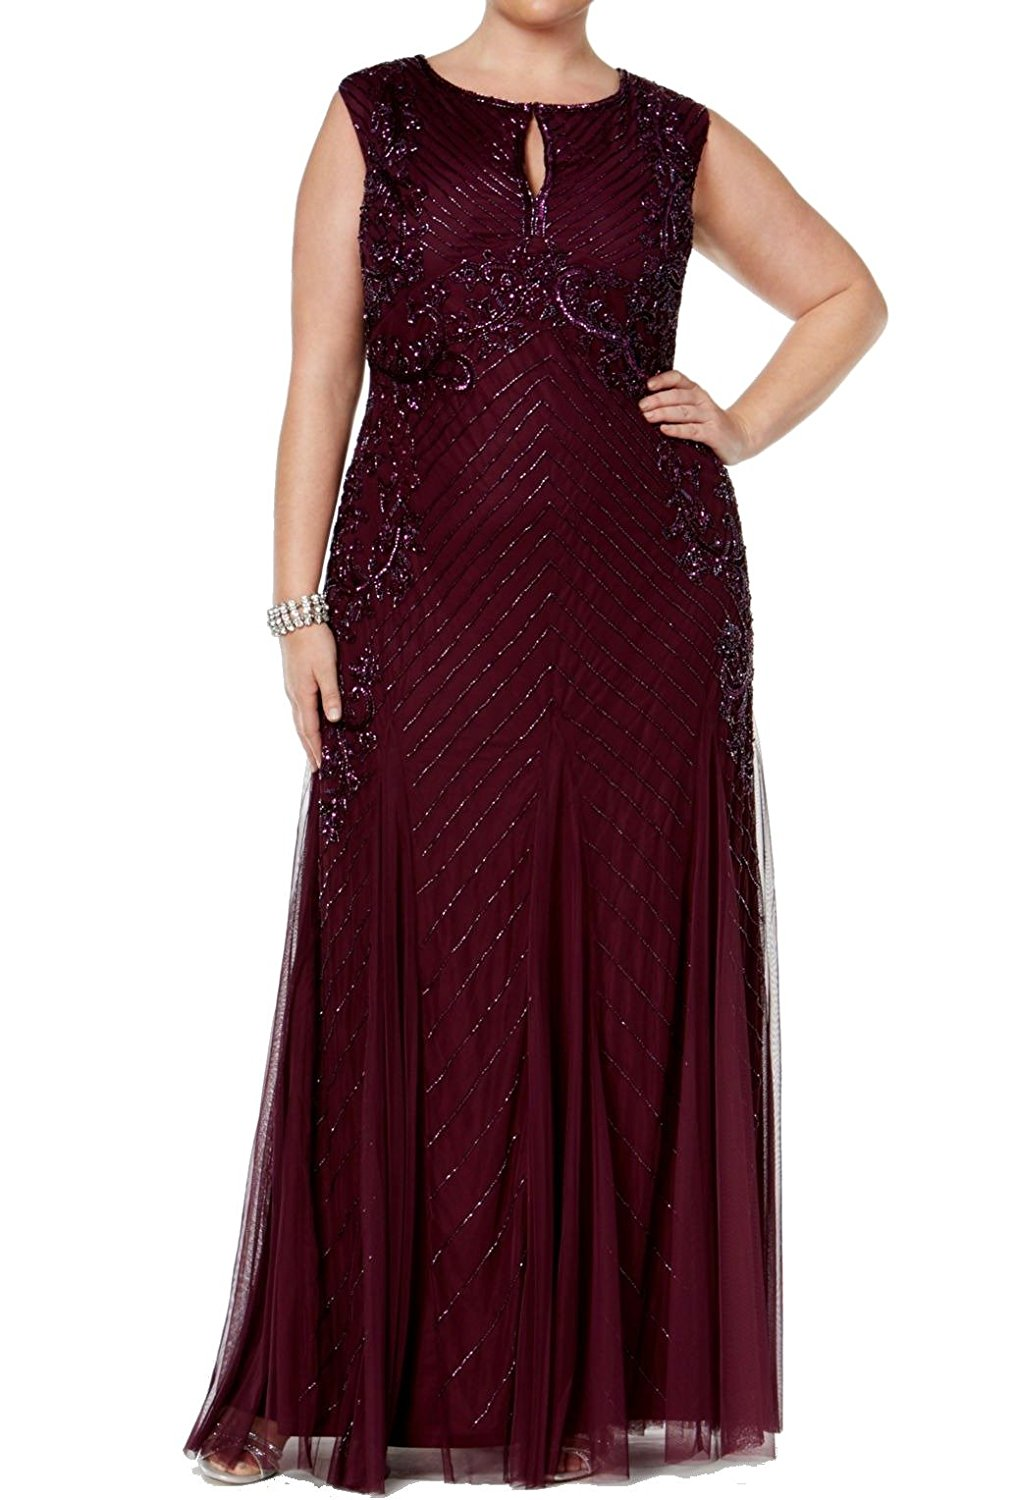 Adrianna Papell Plus Size Cassis Beaded Keyhole Evening Gown Dress ...